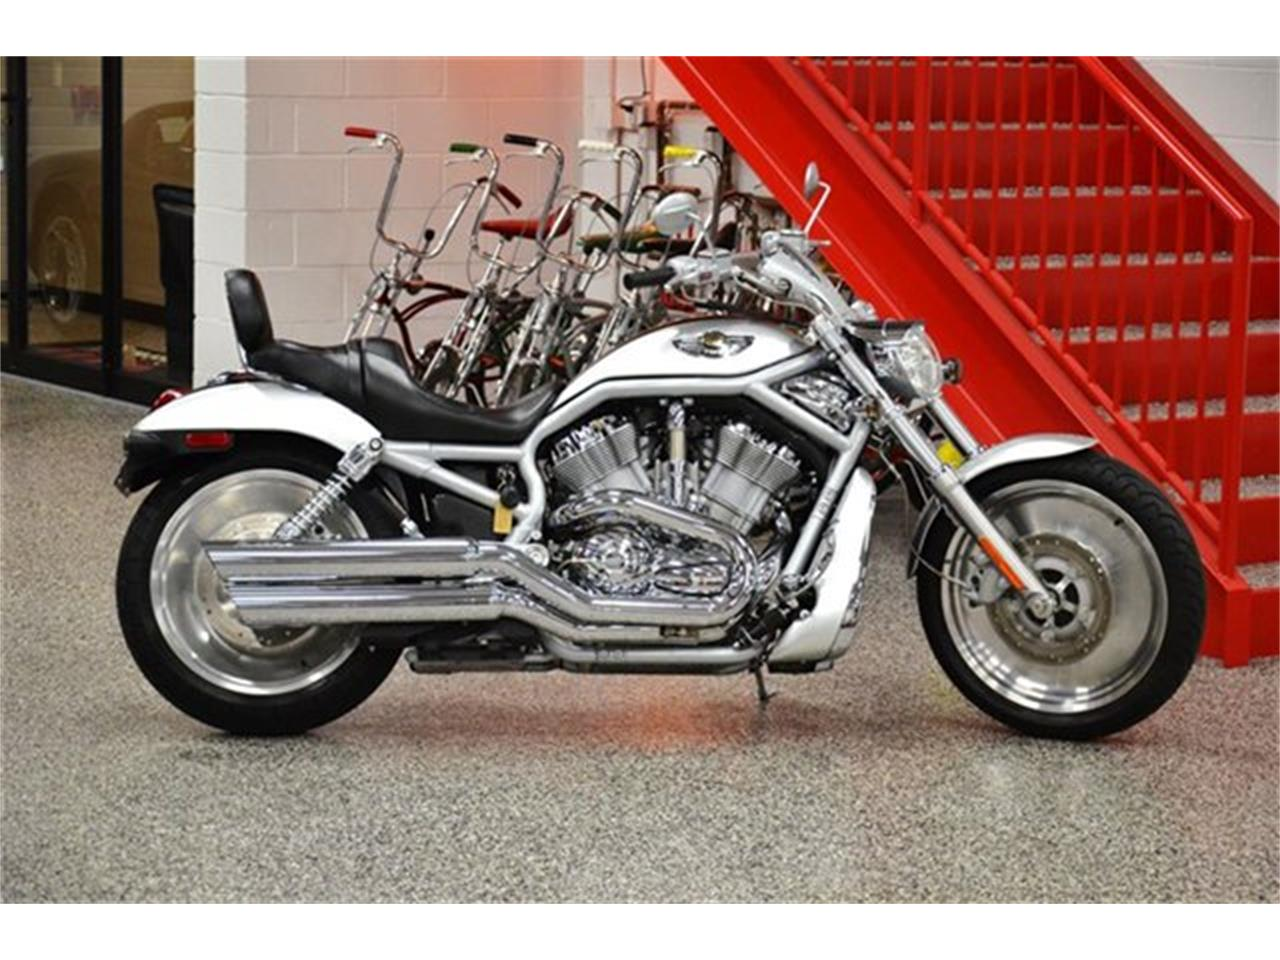 2003 Harley-Davidson VRSC for sale in Plainfield, IL